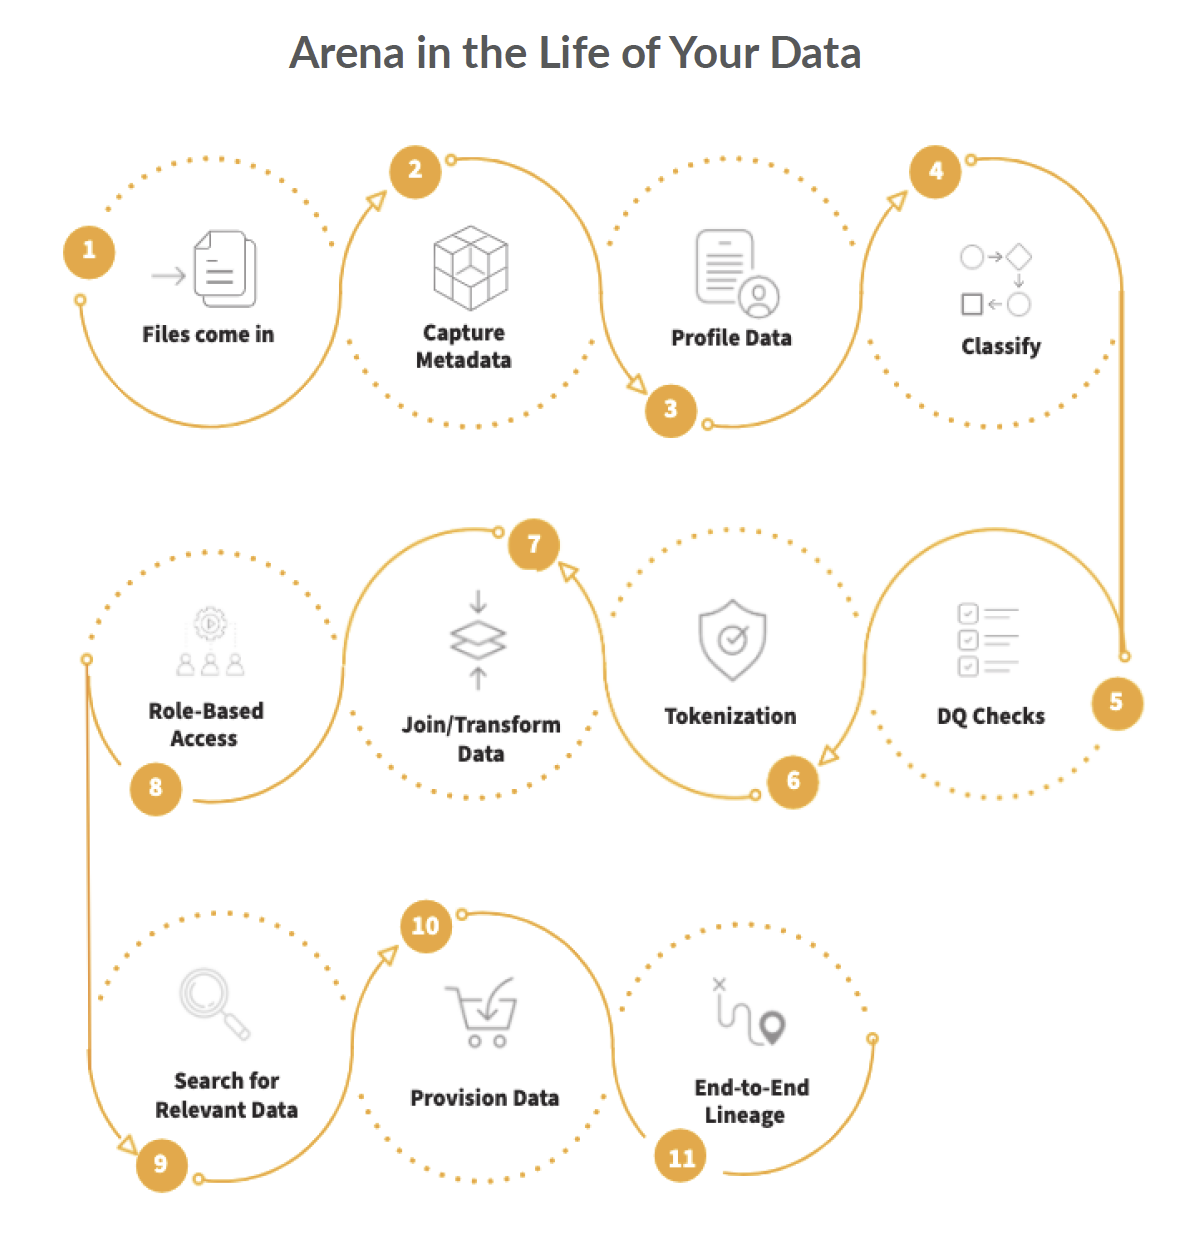 Arena in the Life of Your Data